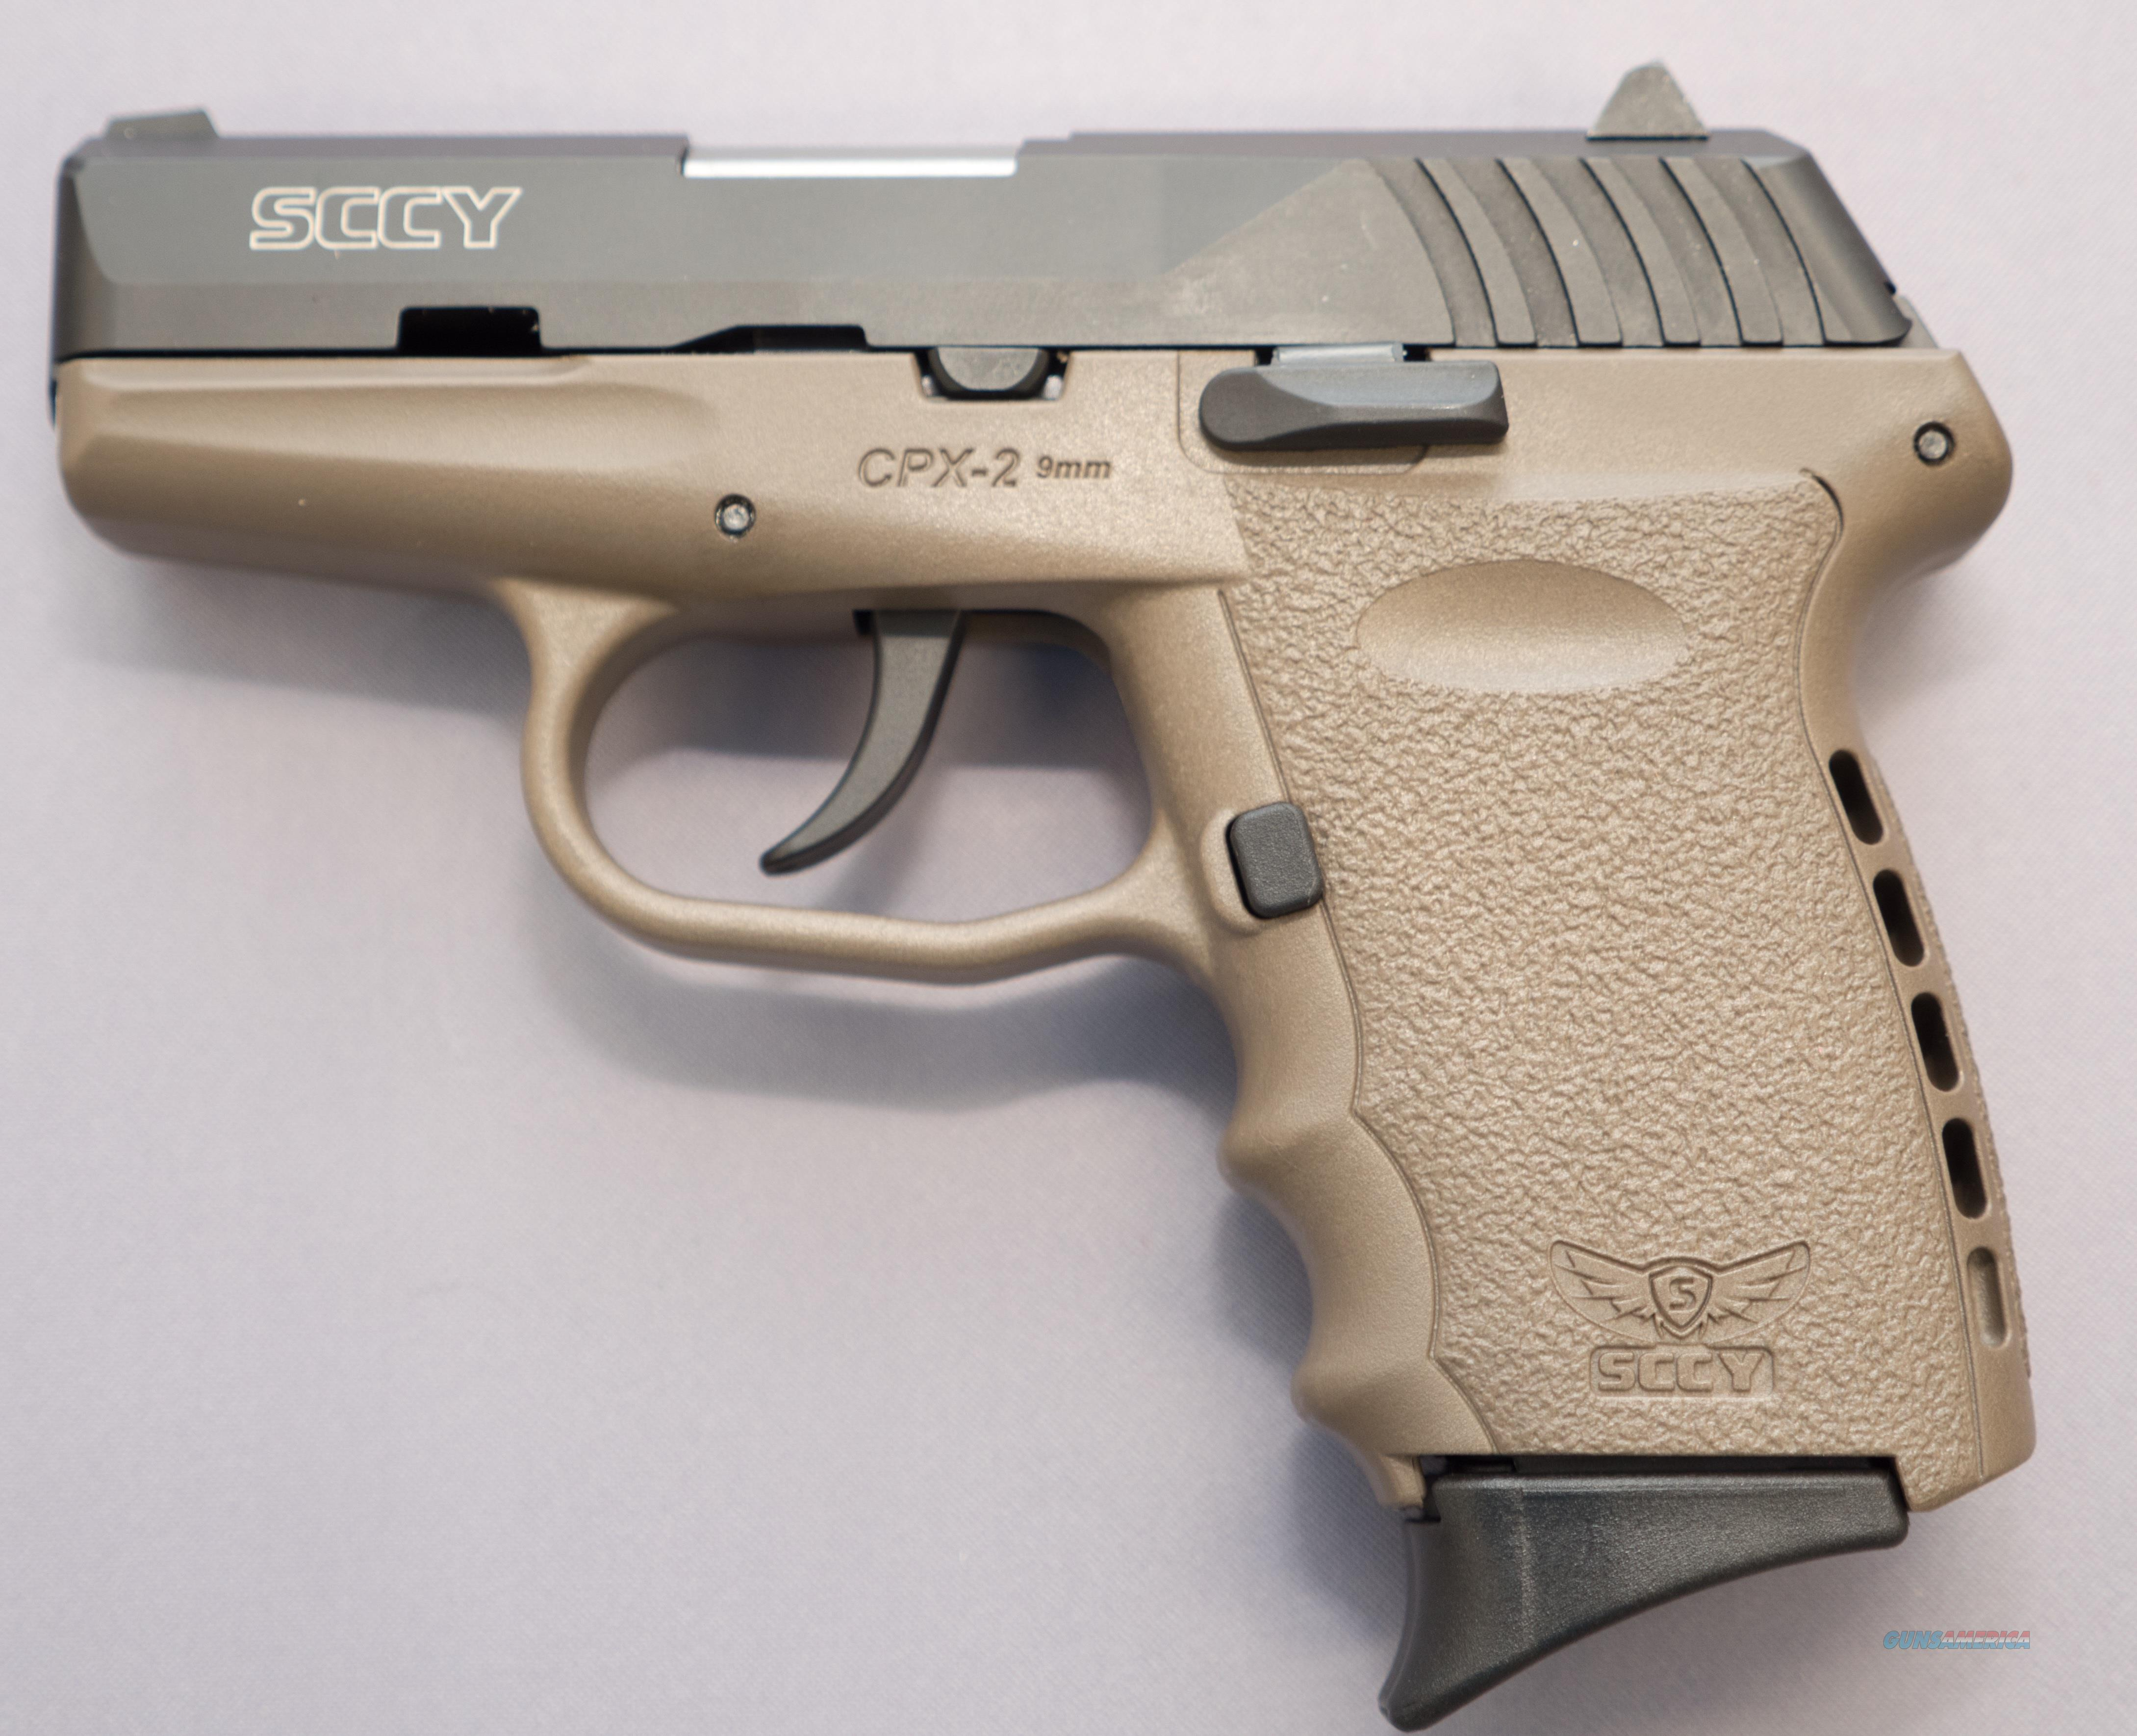 SCCY CPX-2 9mm 10+1 Black/FDE $15 Flat Rate shipping No Credit Card Fees  Guns > Pistols > SCCY Pistols > CPX2